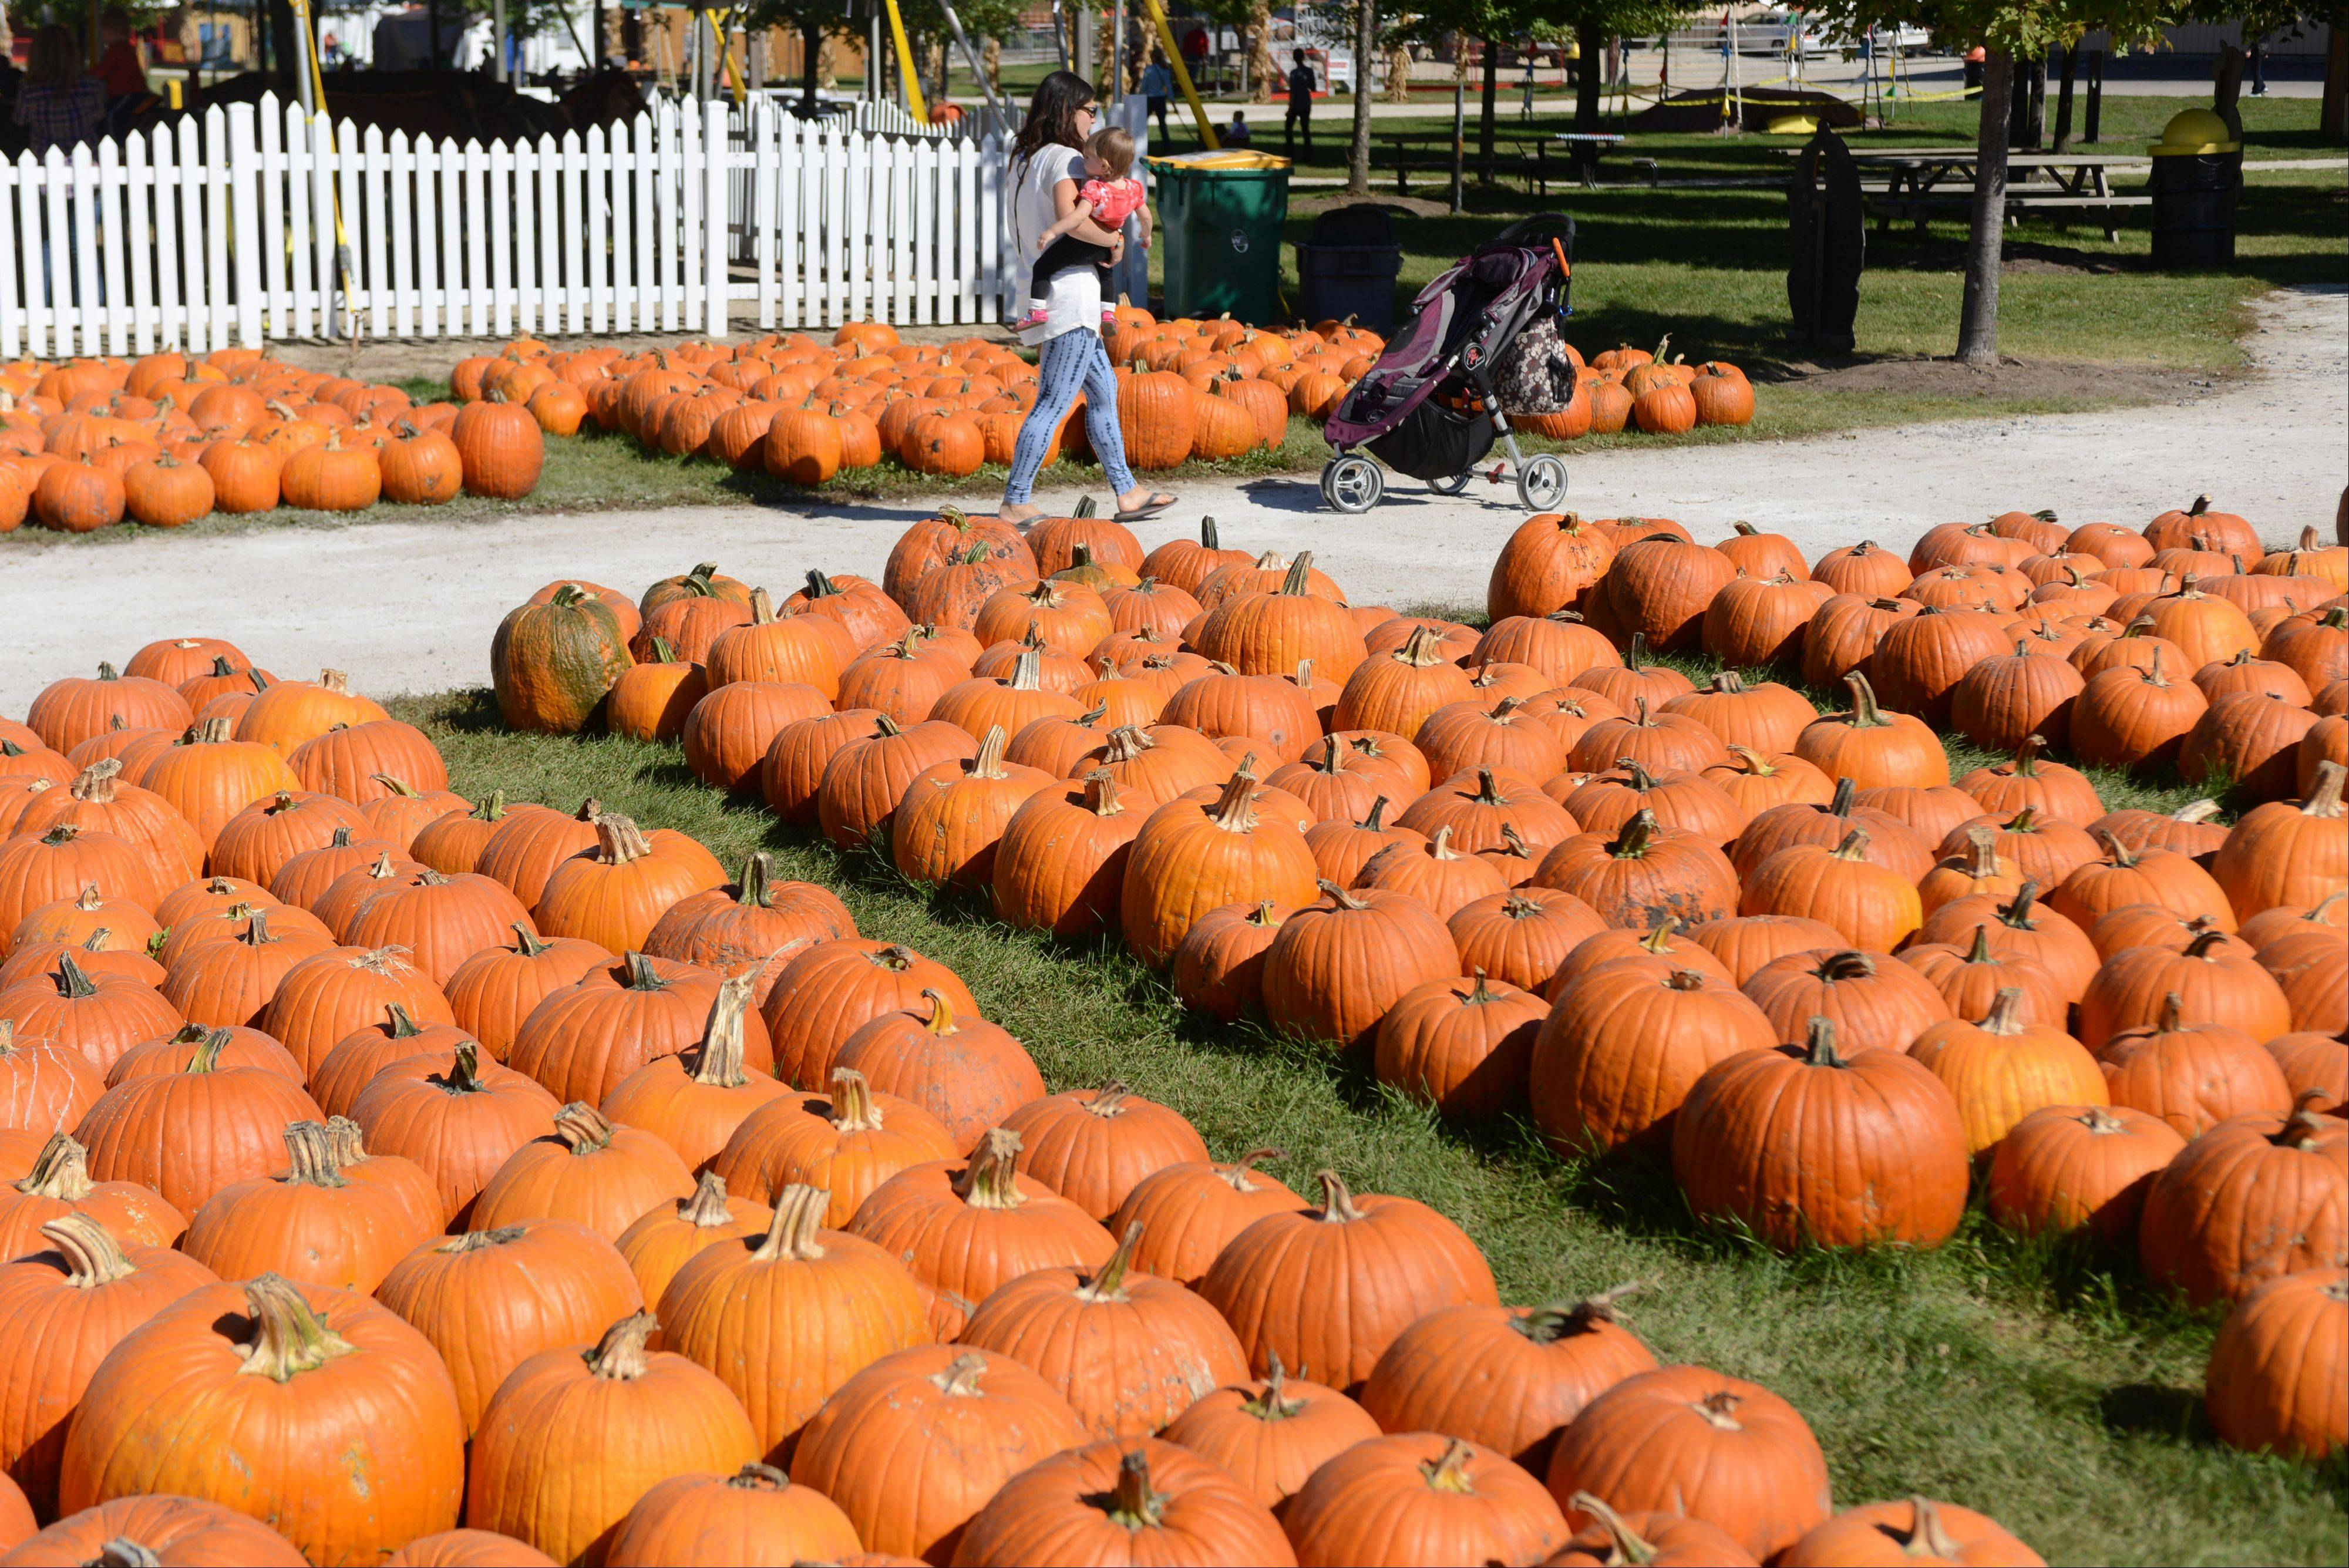 Didier Farms on Aptakisic Road in Lincolnshire is stocked with plenty of pumpkins.